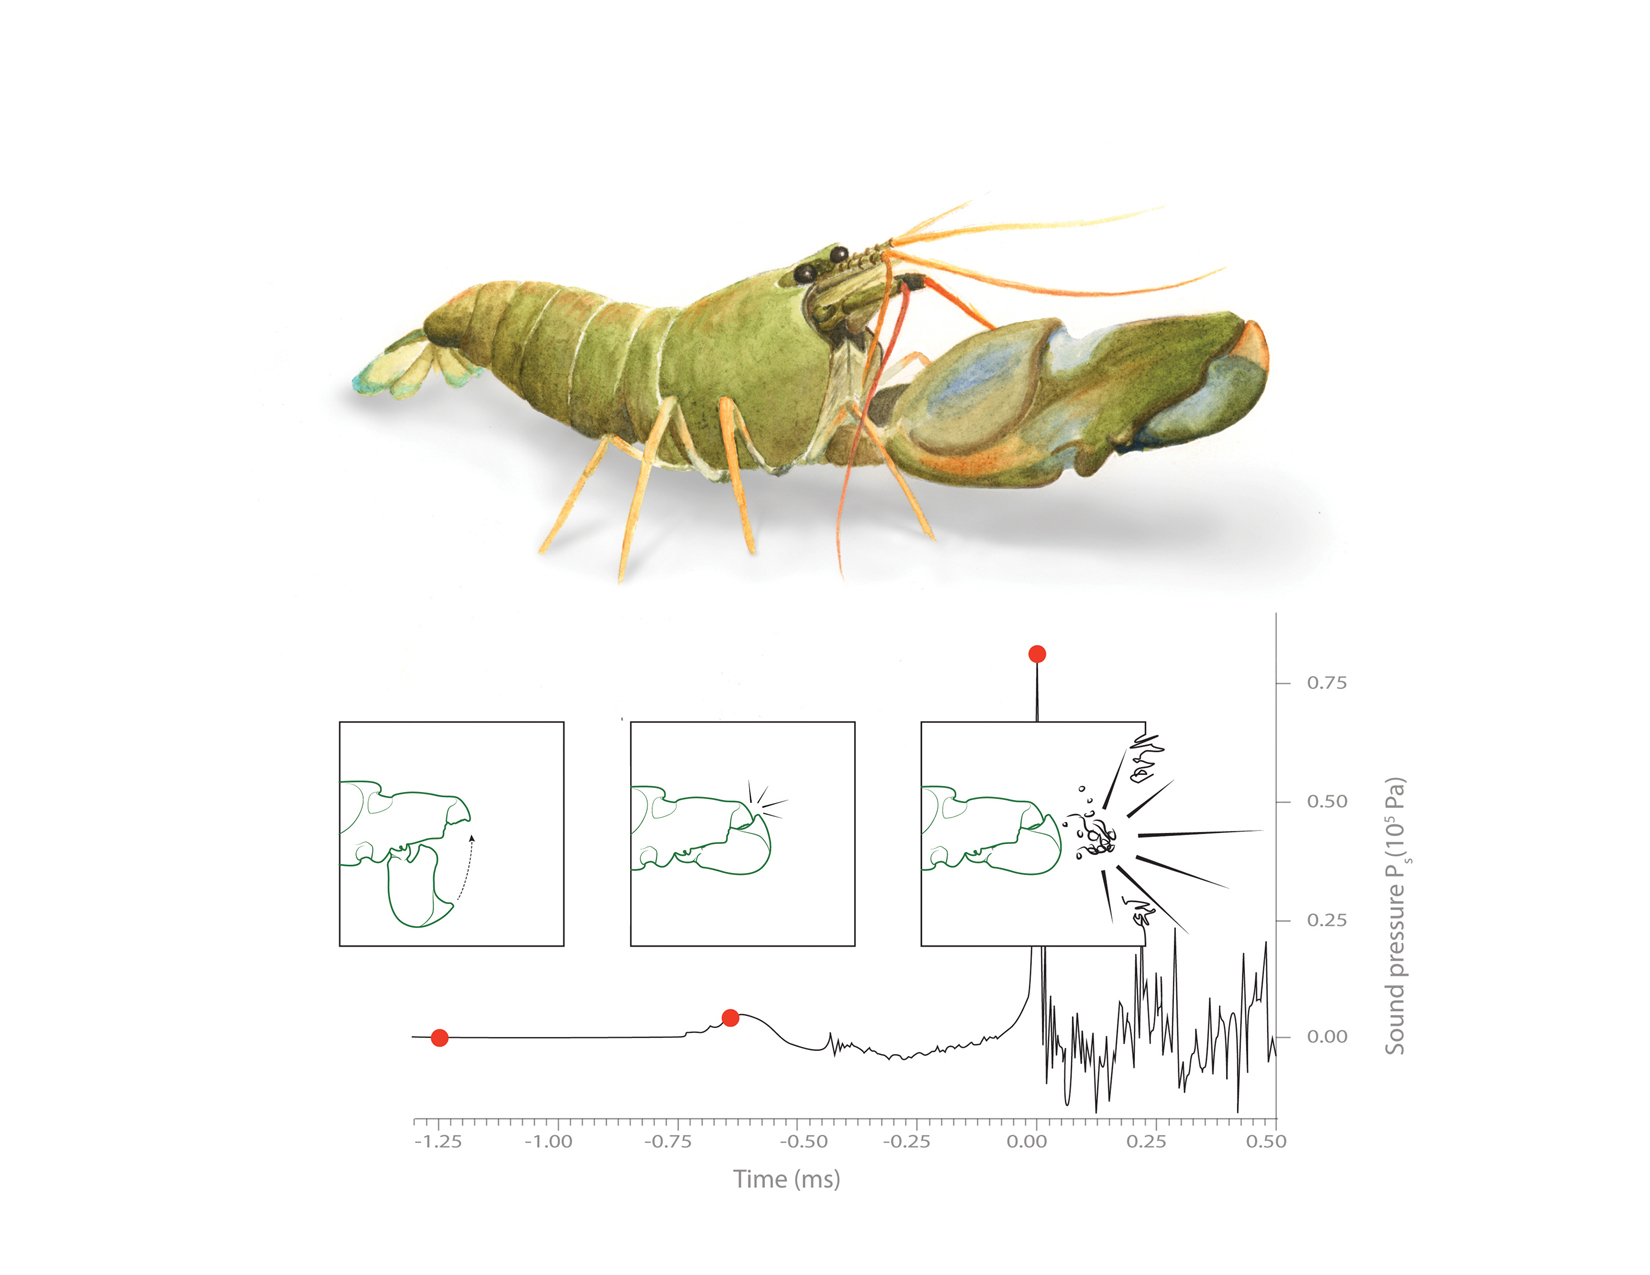 snapping shrimp graph illustration